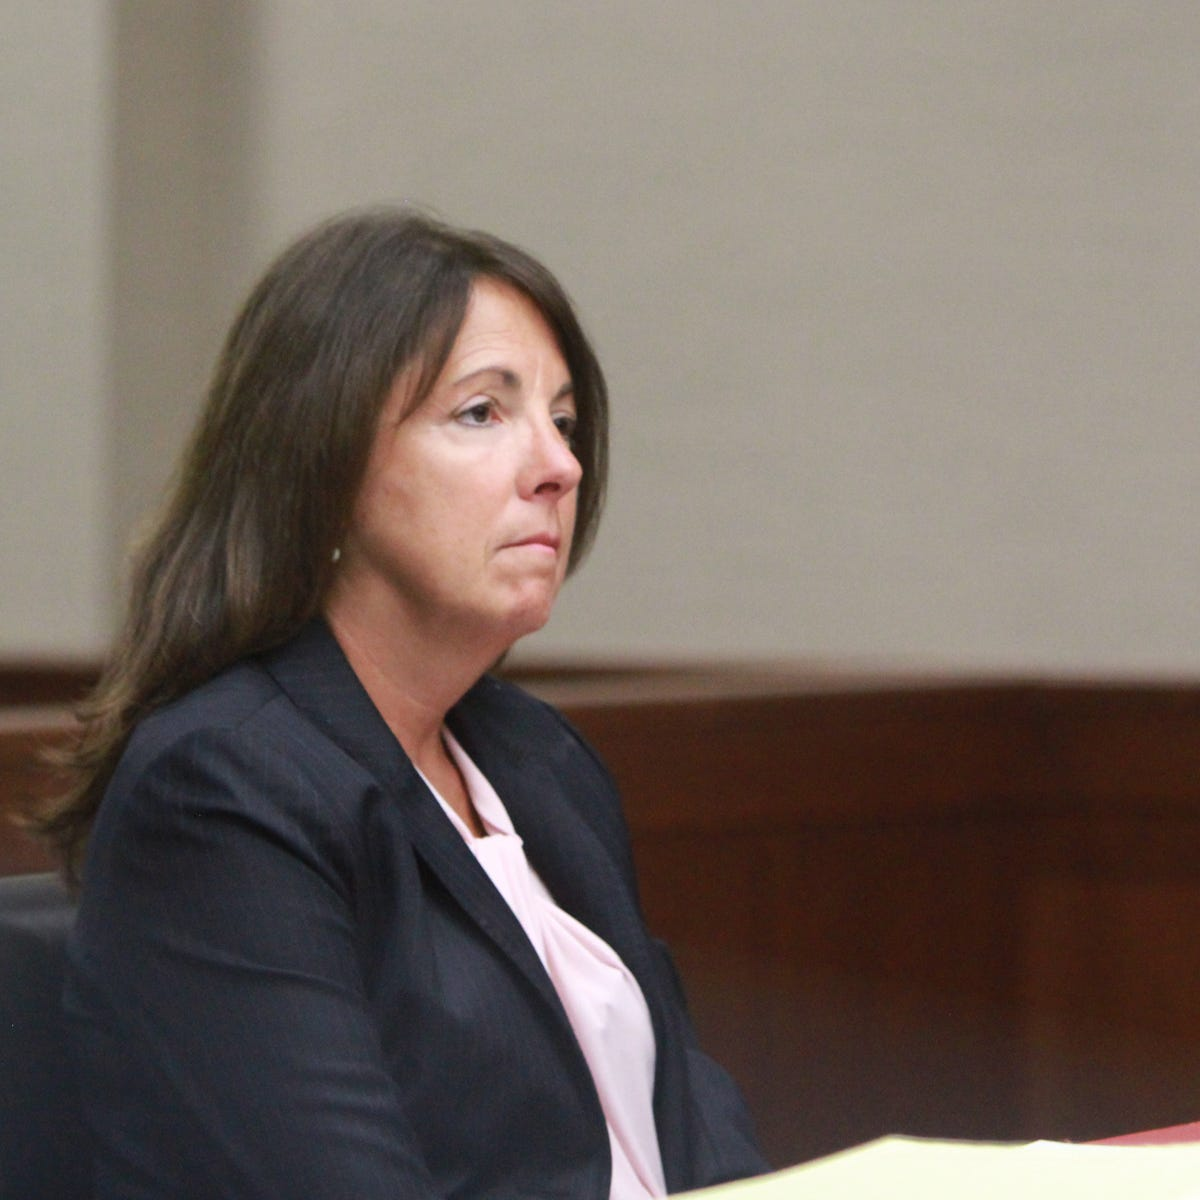 Judge Theresa Brennan listens to her attorney offers several motions on her behalf on Wednesday Sept. 19, 2018 in the 16th District Court.